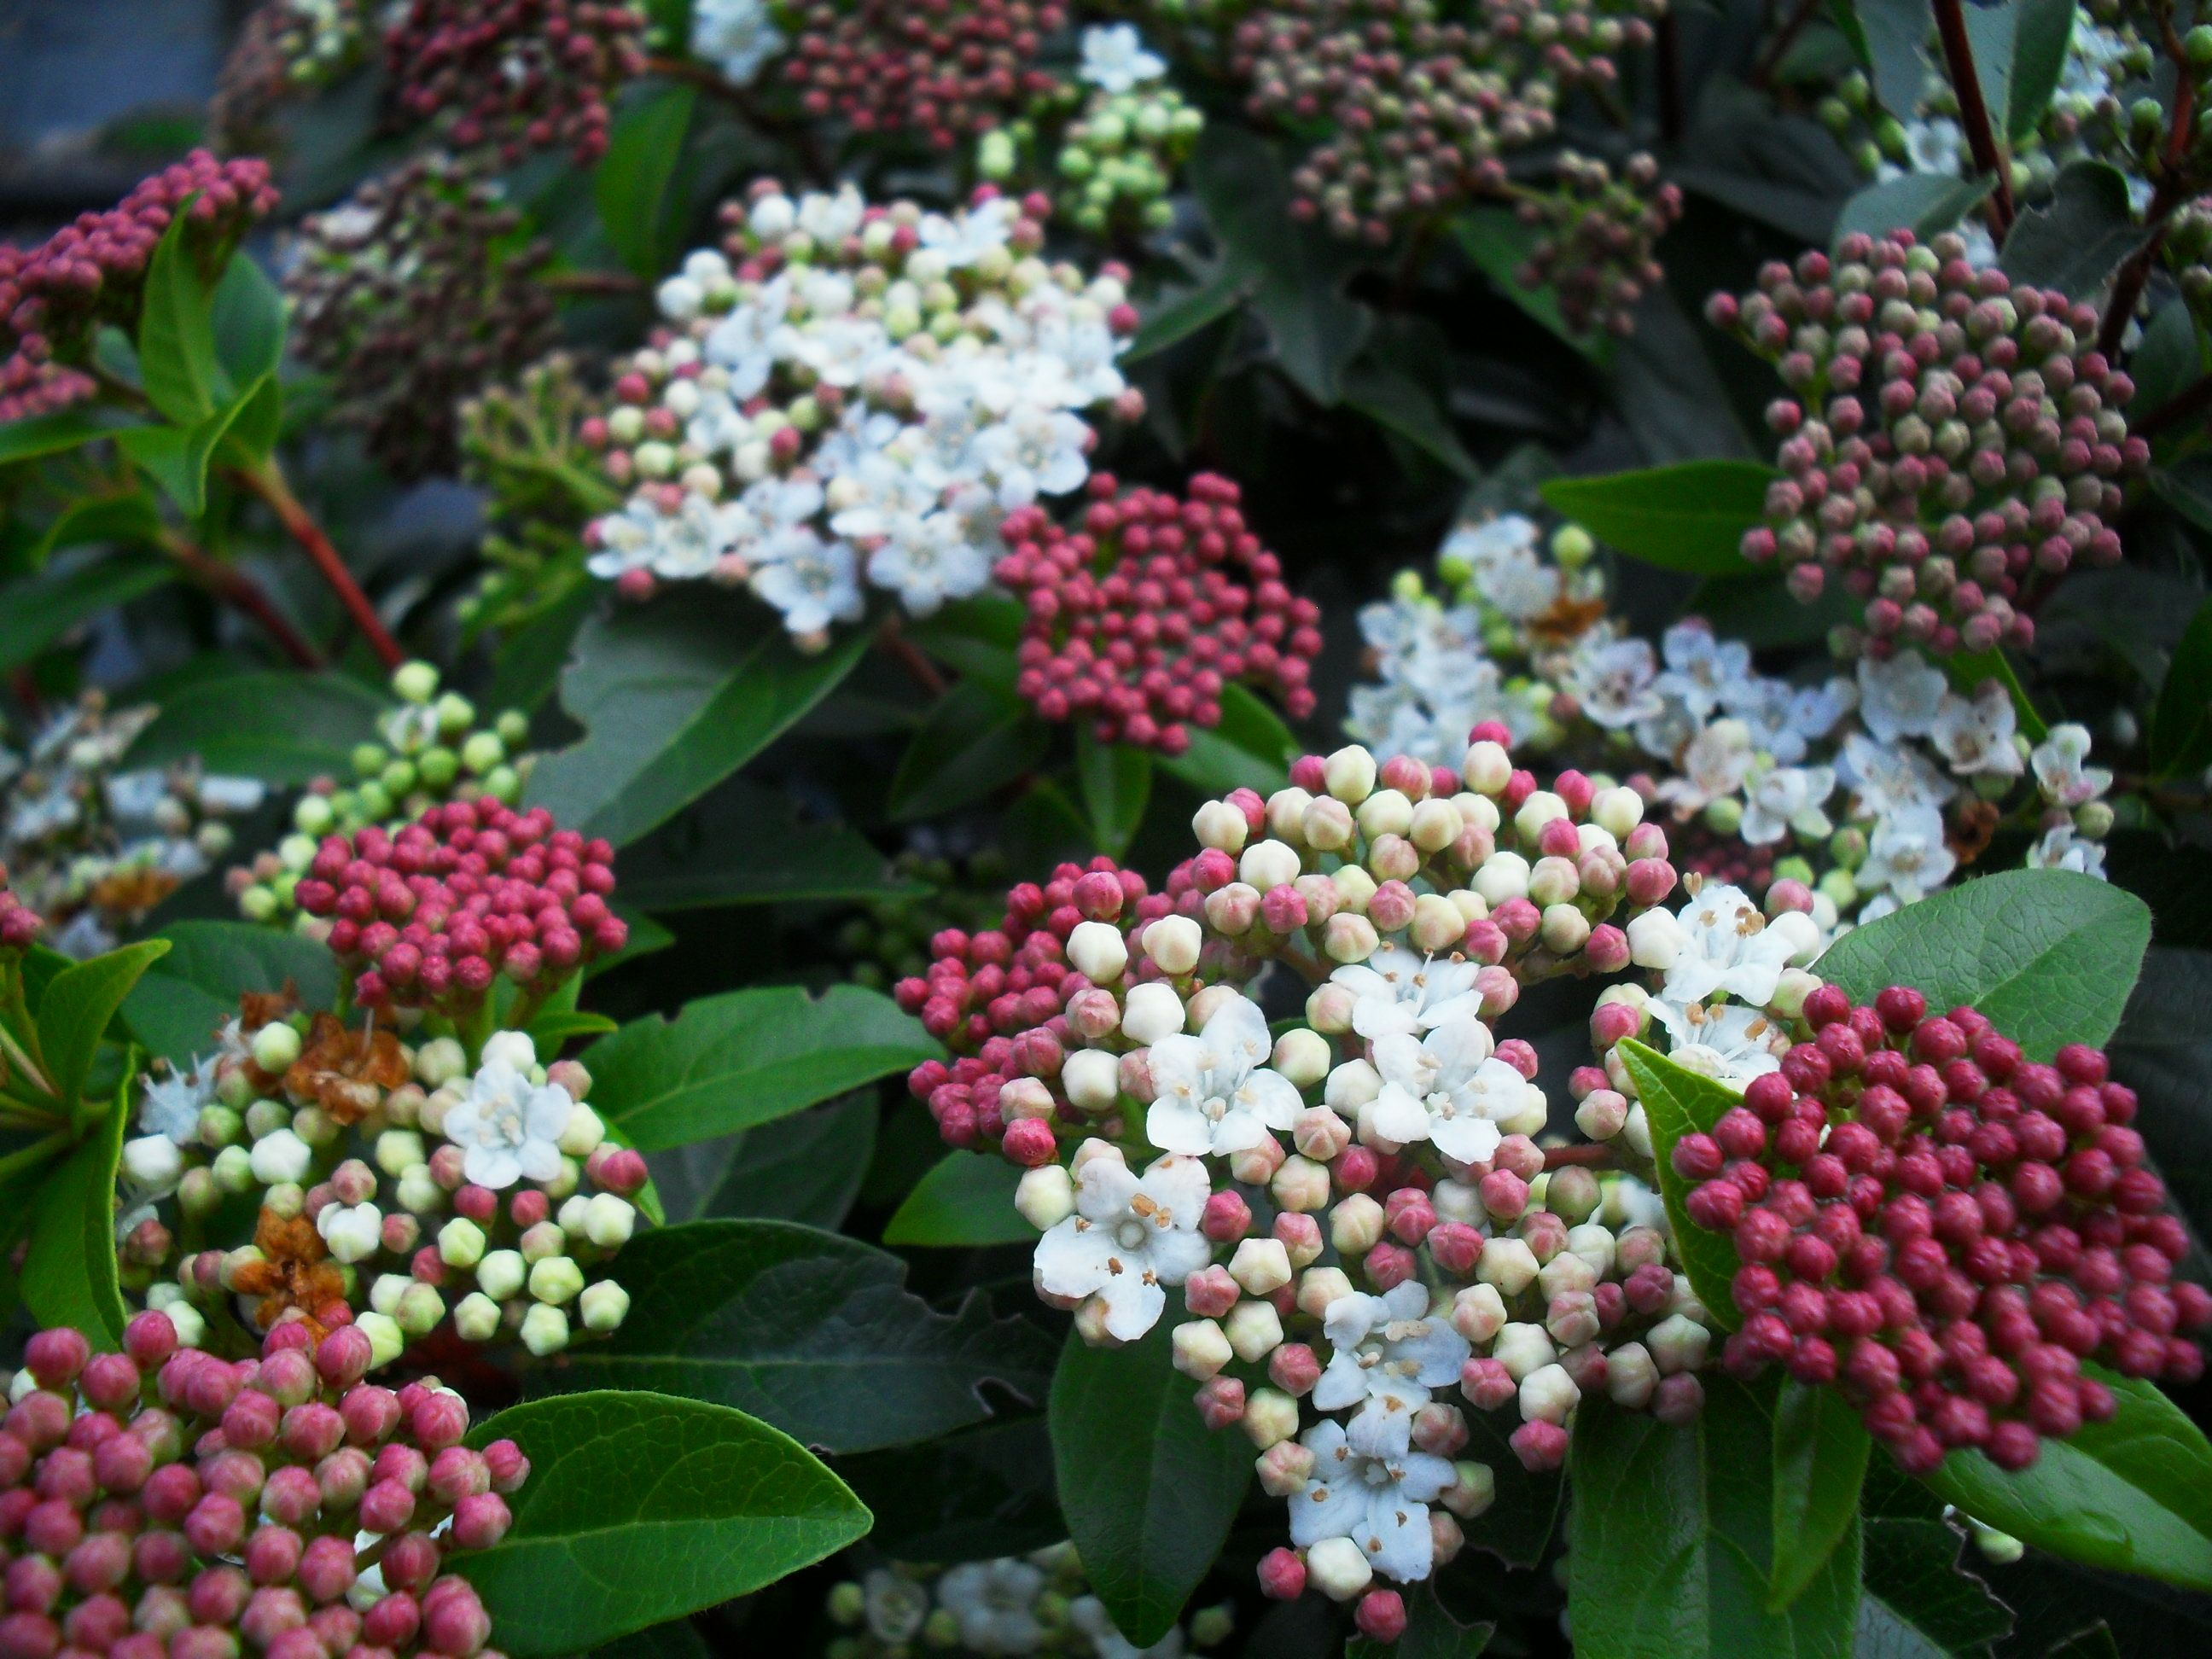 viburnum tinus 39 eve price 39 evergreen shrub flattened heads of pinkish white flowers opening. Black Bedroom Furniture Sets. Home Design Ideas